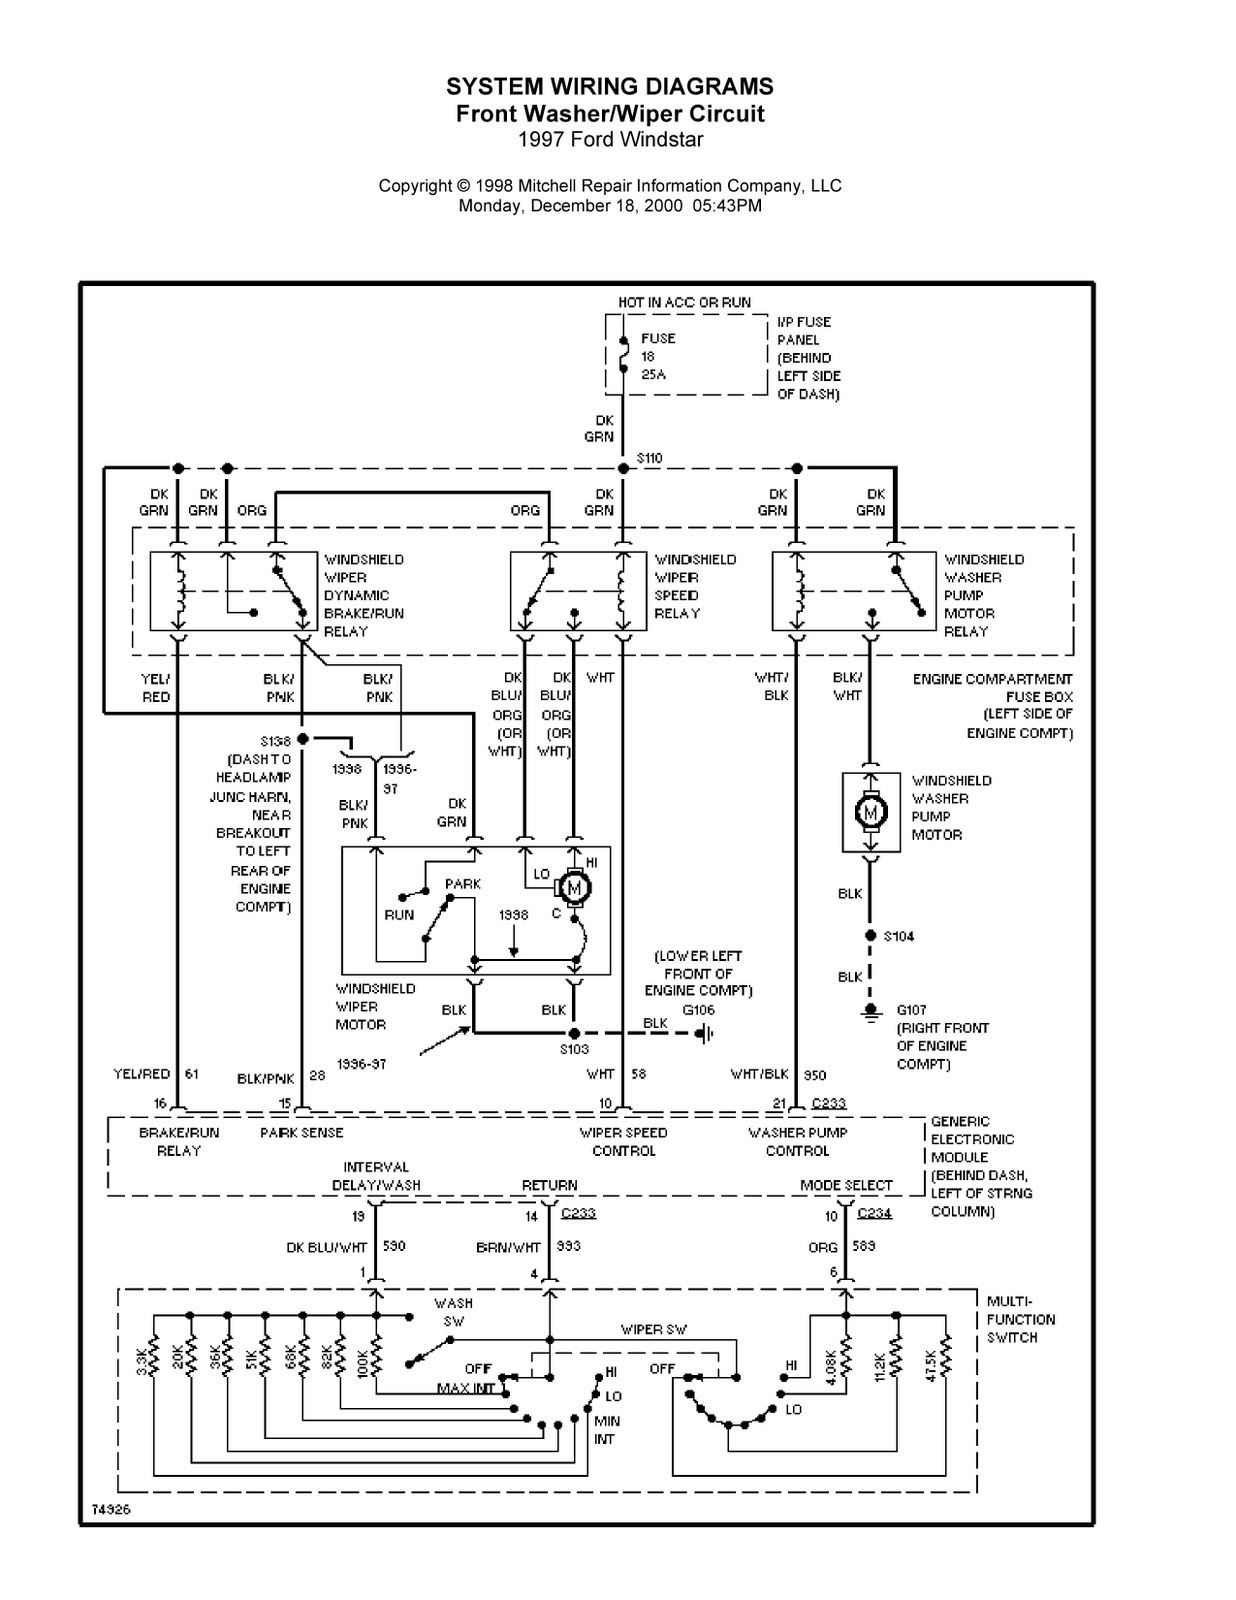 0051 1997 ford windstar complete system wiring diagrams wiring  at gsmx.co